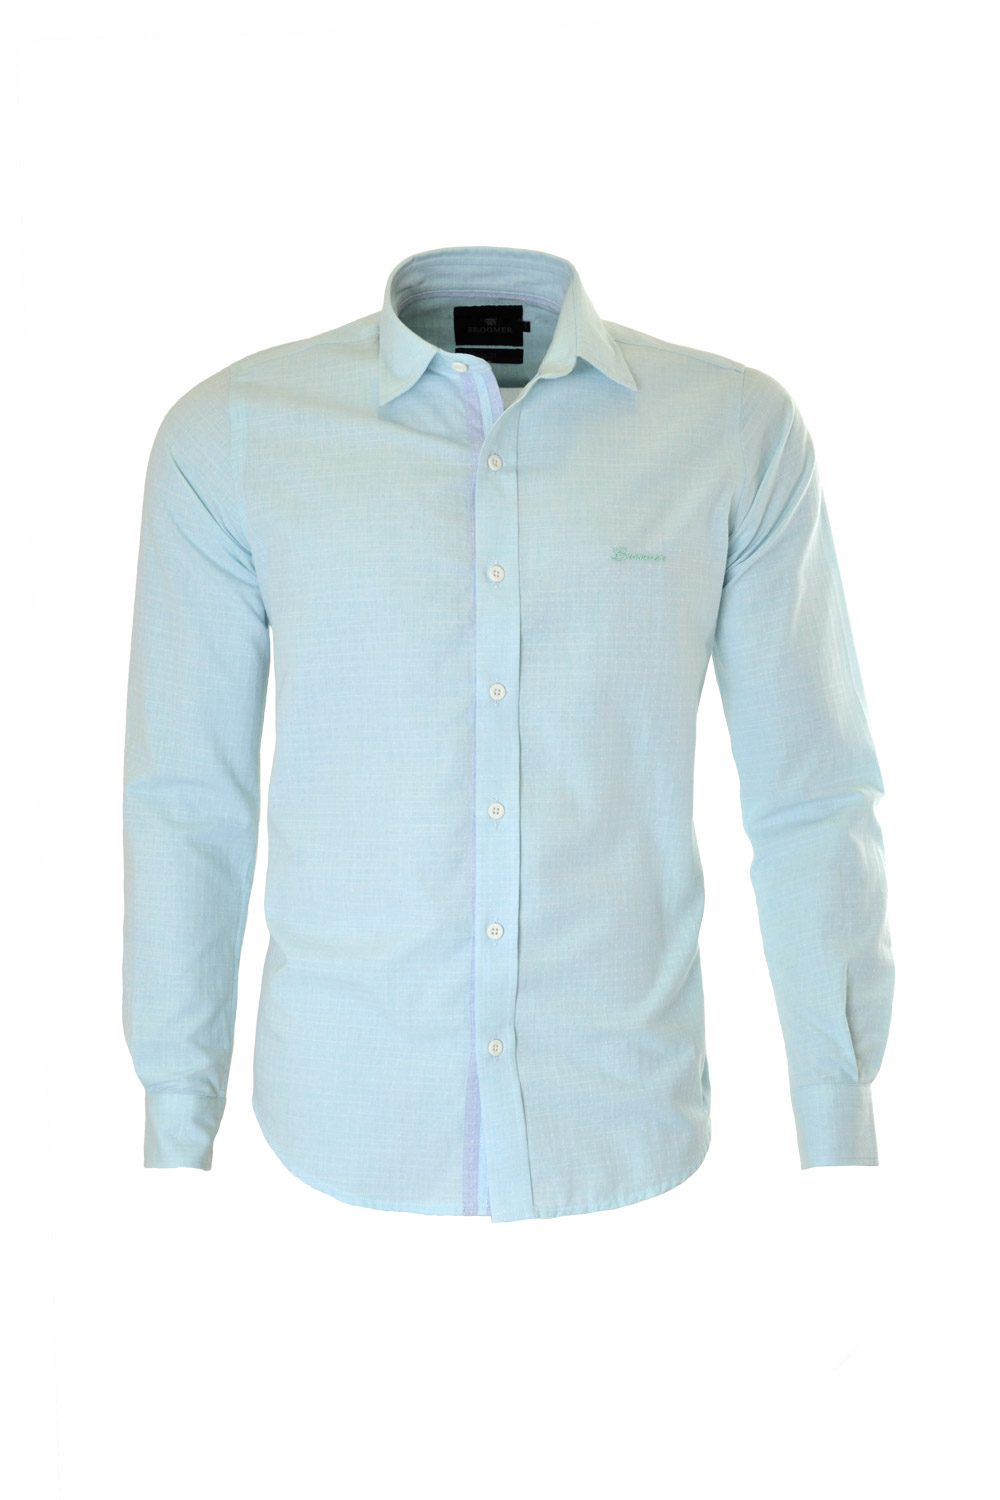 CAMISA ML FASHION SLIM ALGODAO COMPOSE FIL A FIL VERDE AGUA